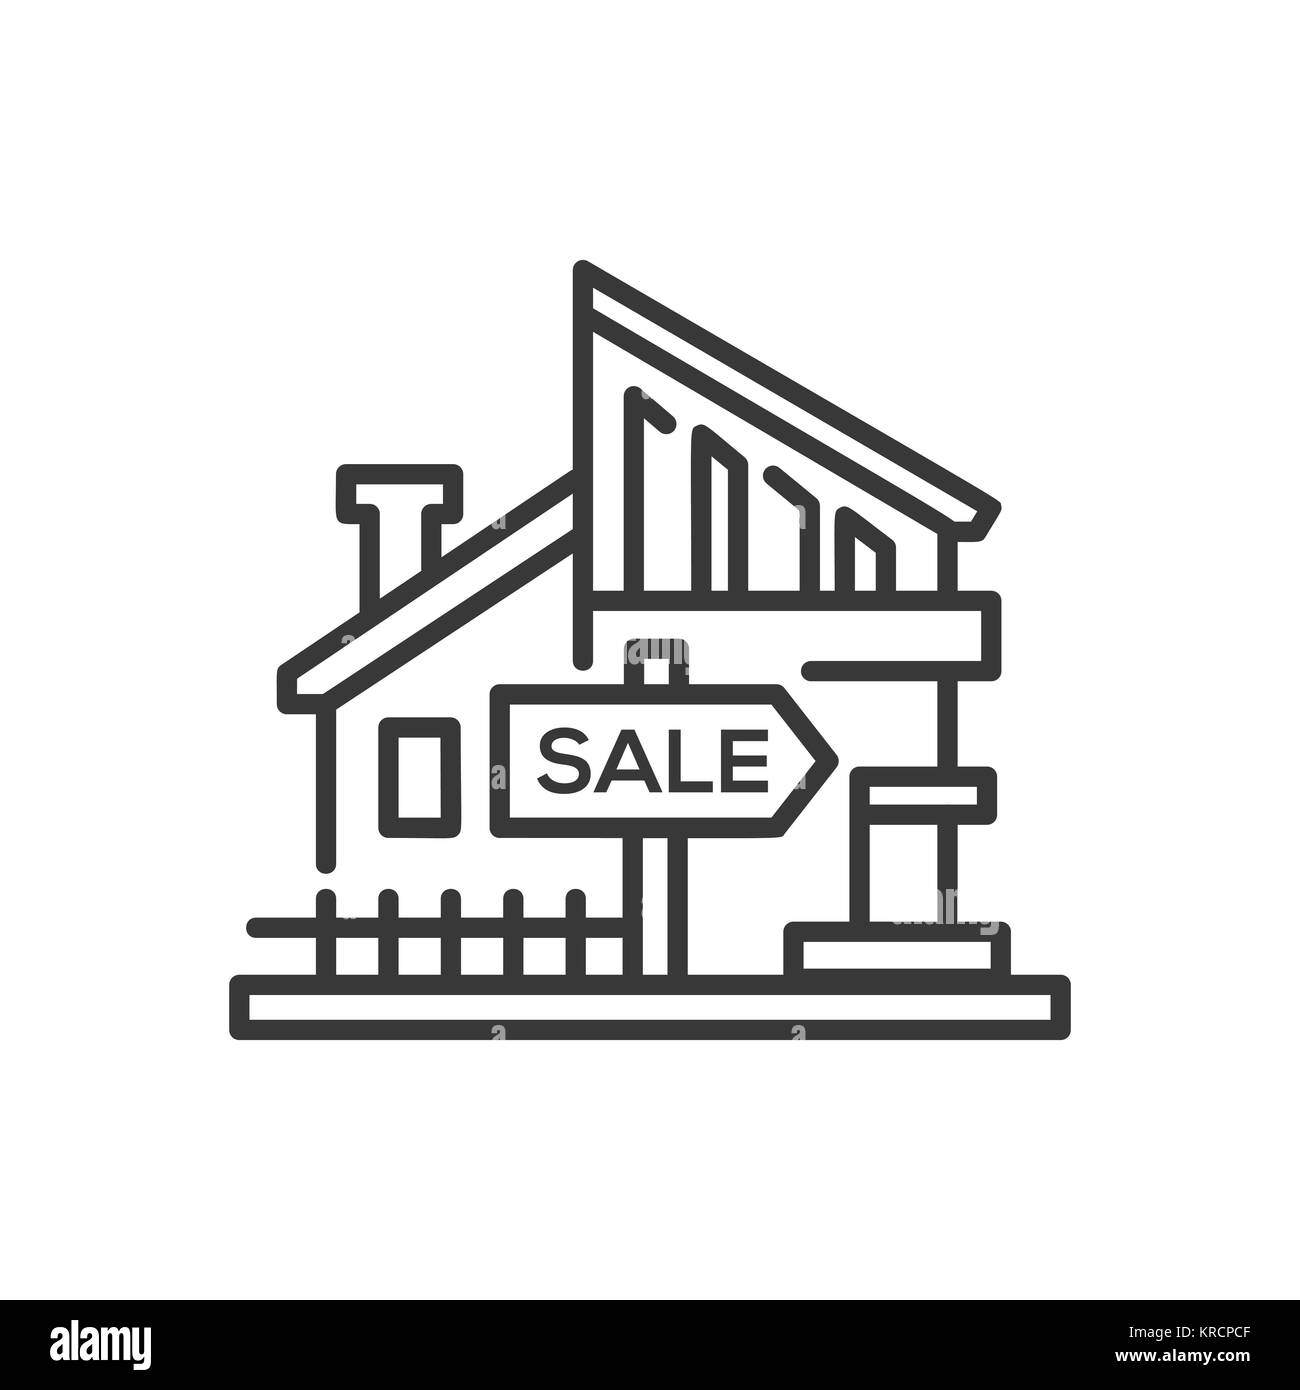 House for sale - line design single isolated icon - Stock Image